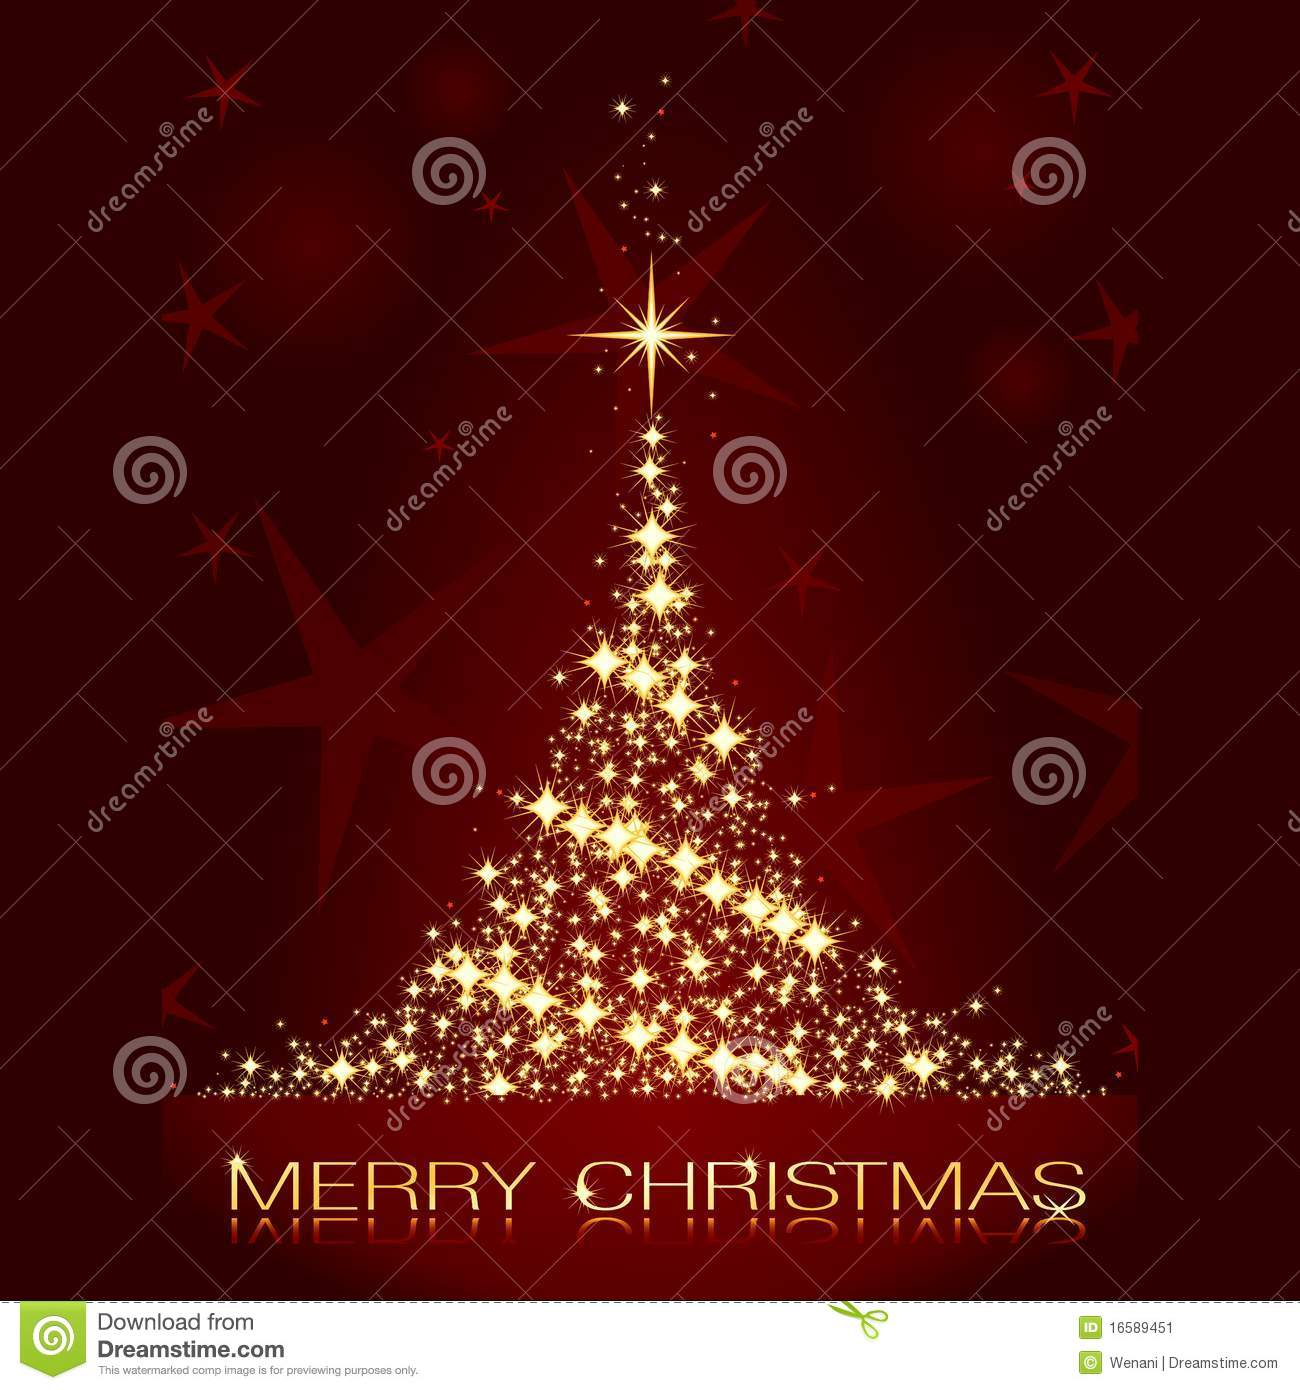 Christmas card with shining golden Christmas tree